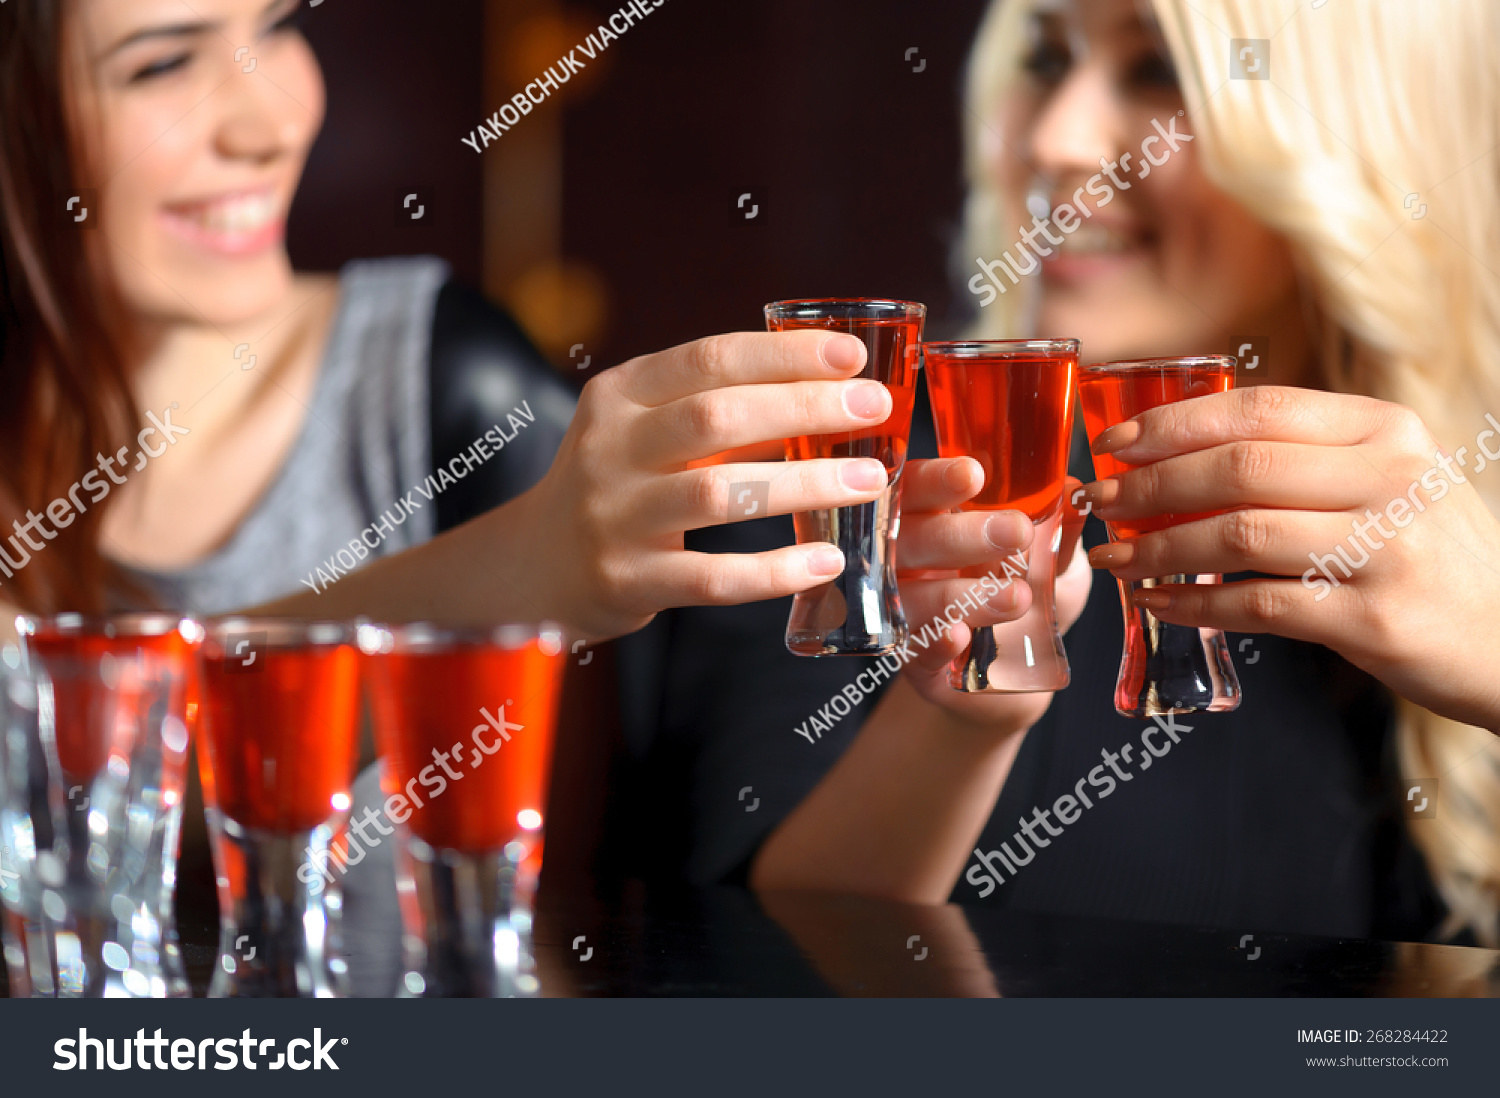 stock-photo-friendship-forever-selective-focus-on-three-shots-with-red-beverage-and-smiling-girls-in-blurry-268284422.jpg